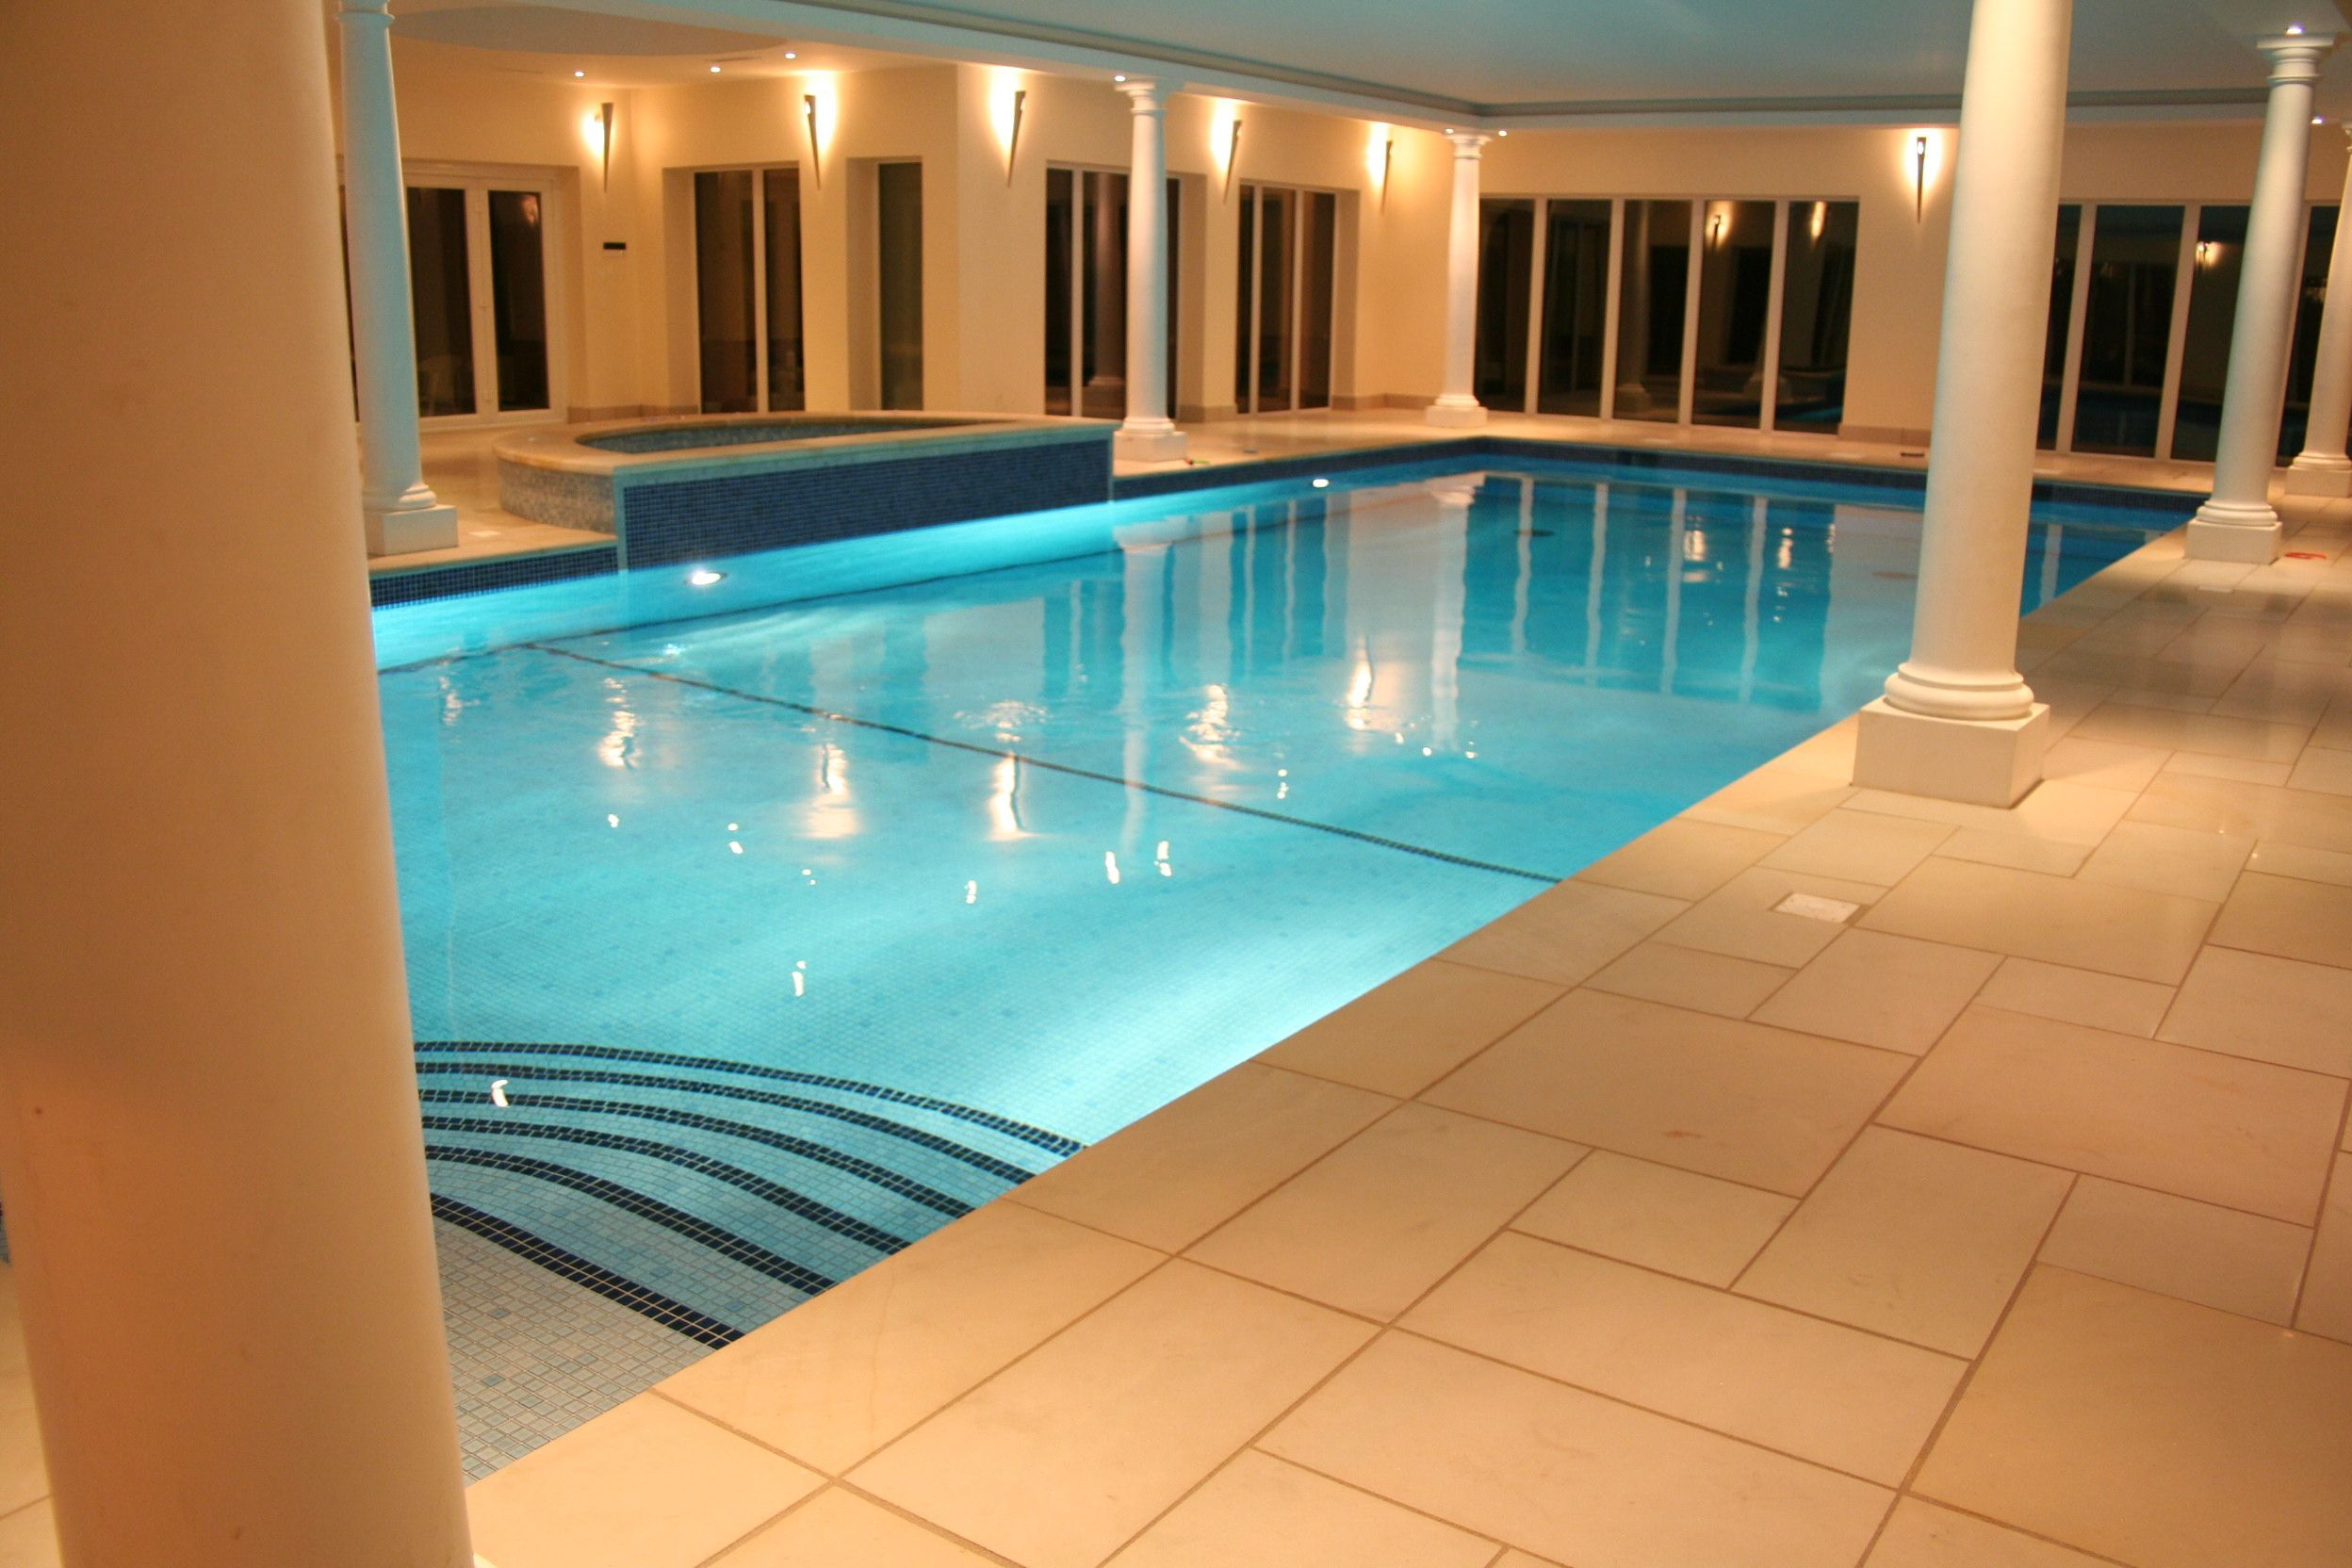 Images Of Indoor Pools Build An Indoor Swimming Pool And Deep End Pools Can Project Indoor Swimming Pool Design Amazing Swimming Pools Indoor Swimming Pools